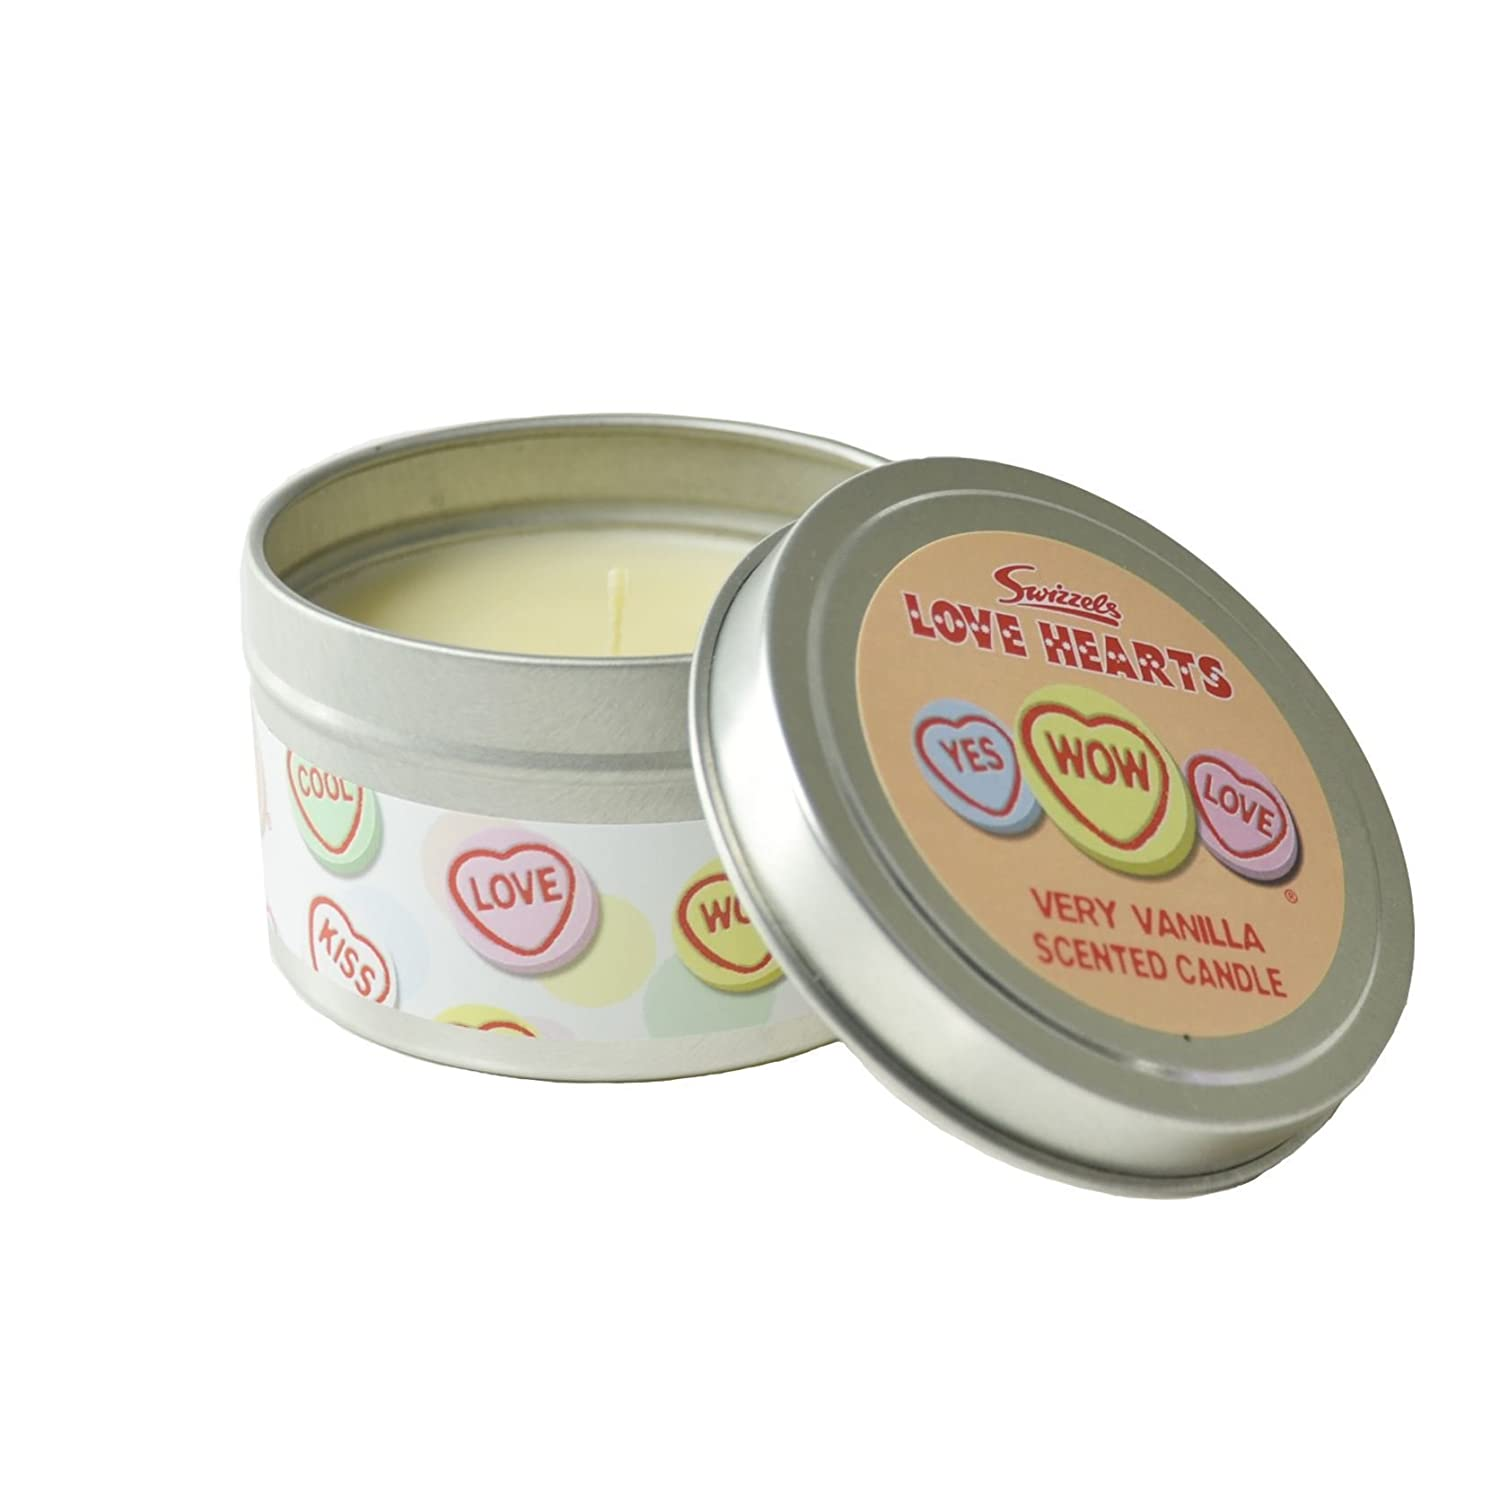 Love Hearts Scented Candle In A Tin 85g - Very Vanilla